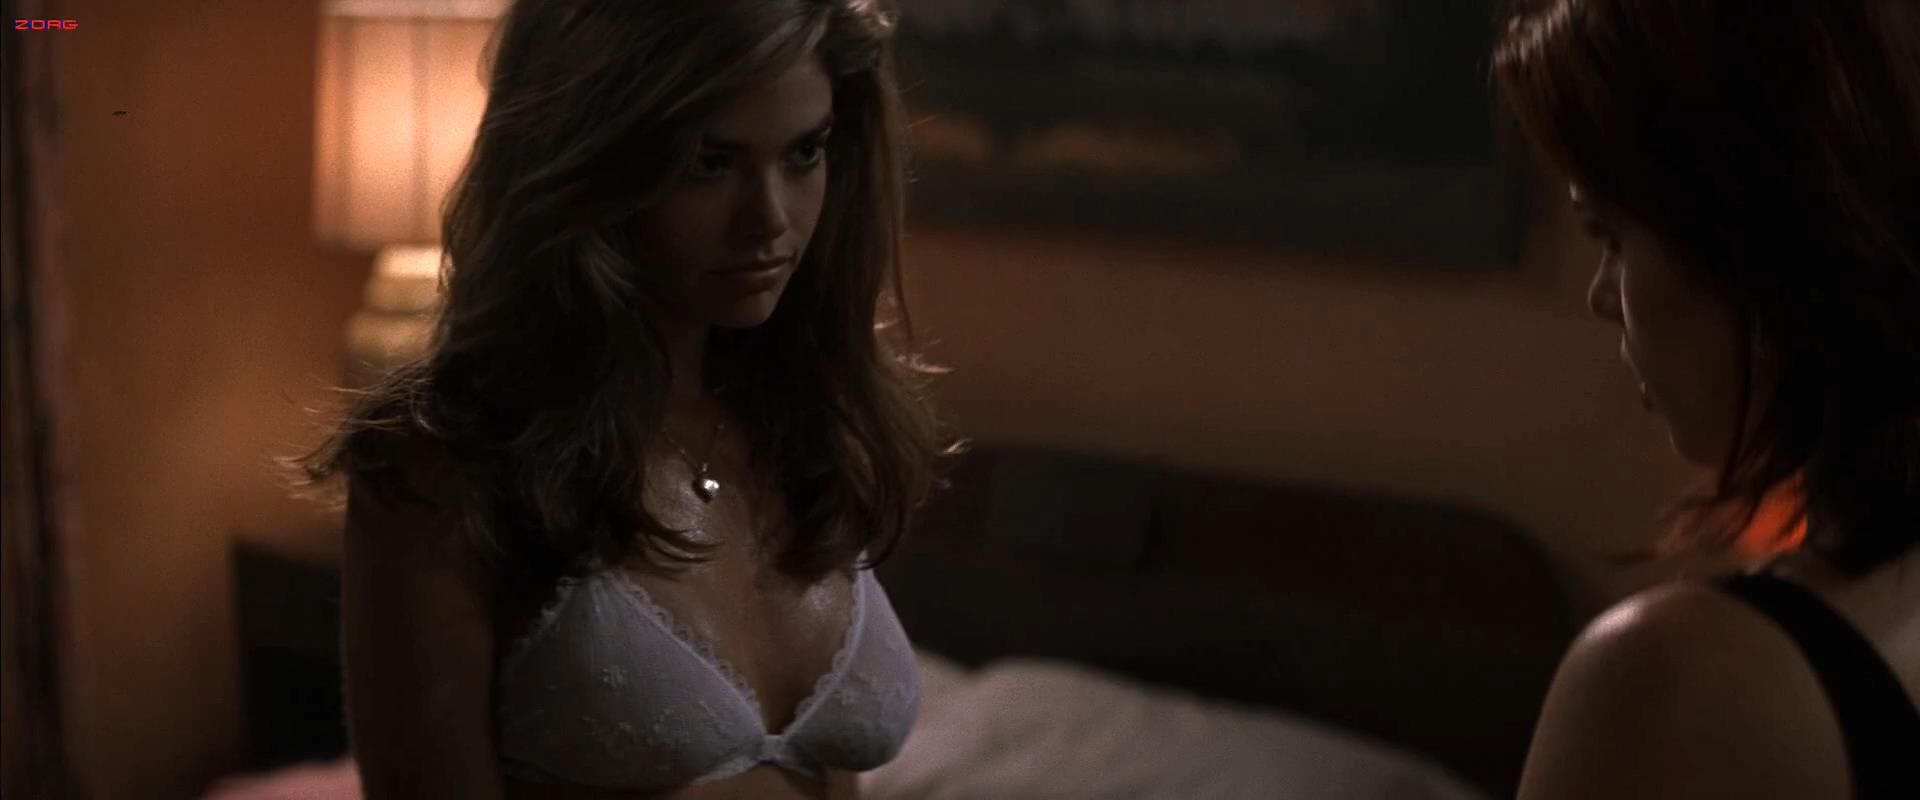 image Denise richards amp neve campbell wild things compilation